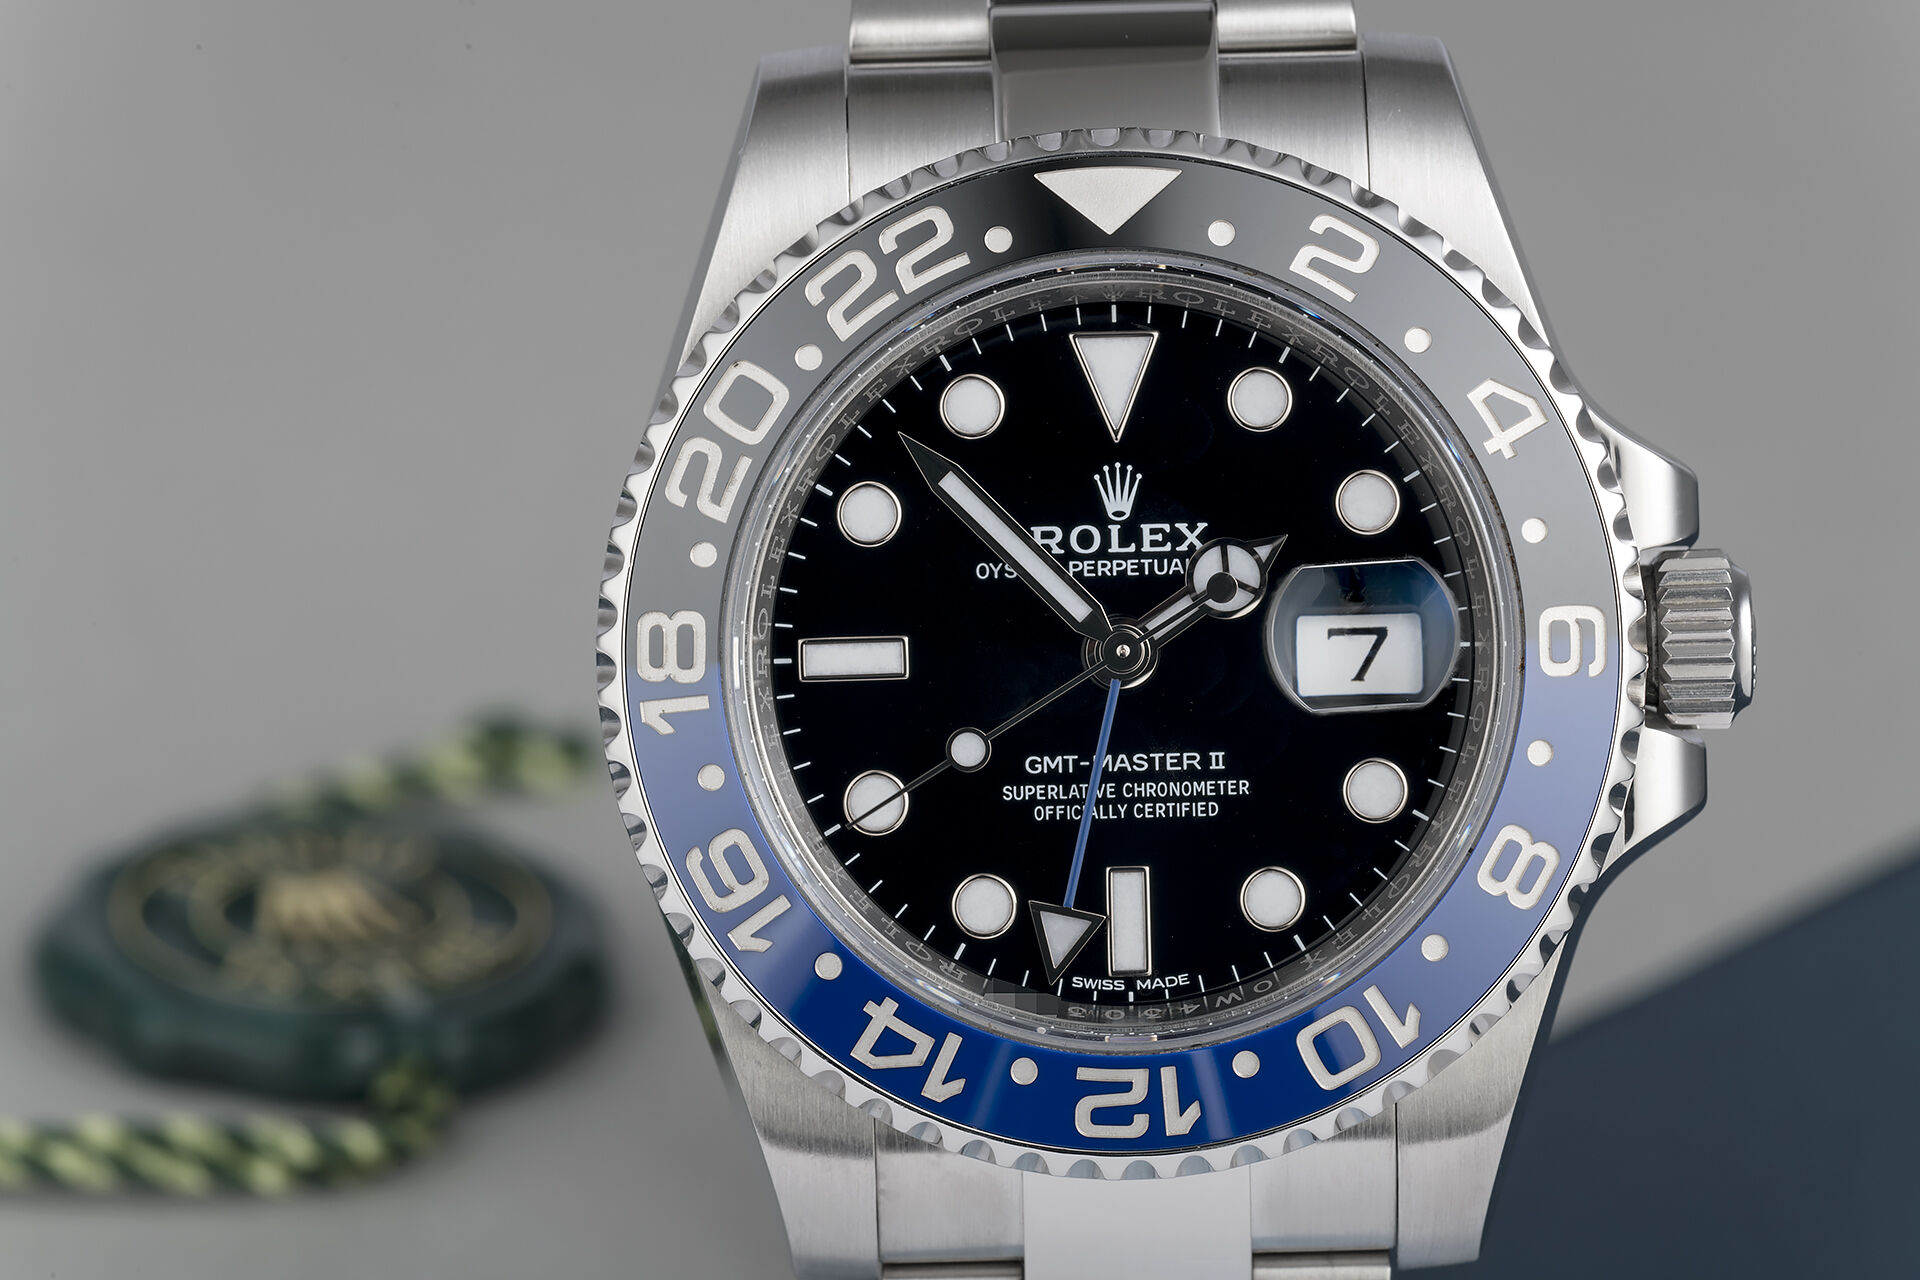 ref 116710BLNR | Discontinued | Rolex GMT-Master II